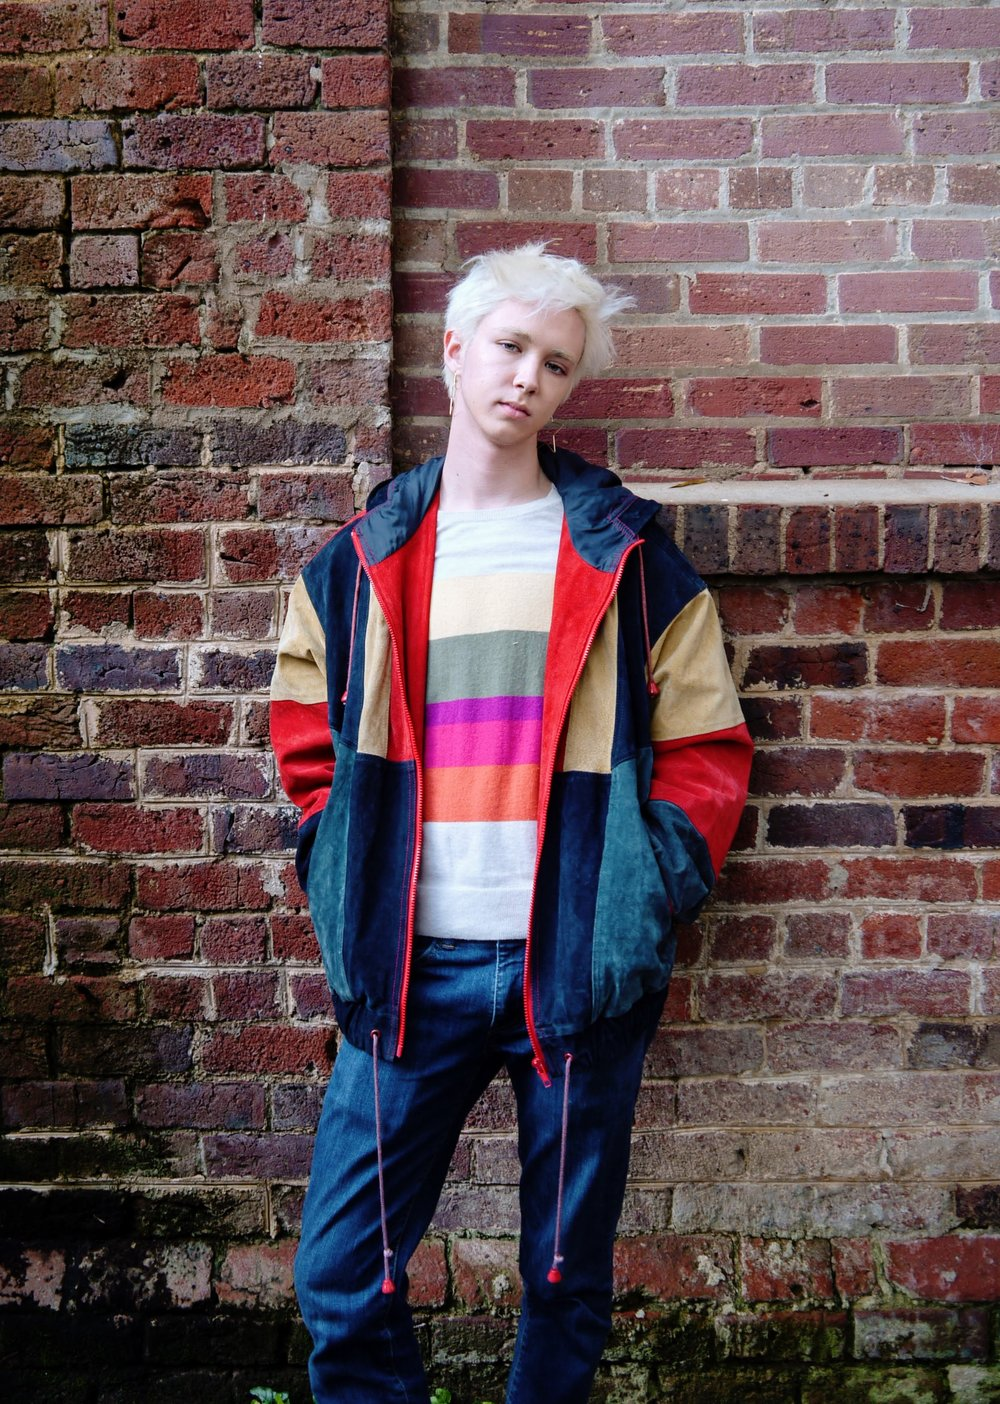 Indigo, freshman, wears a thrifted striped sweater underneath a colorful suede jacket, also thrifted. His earrings are from RUMORS.